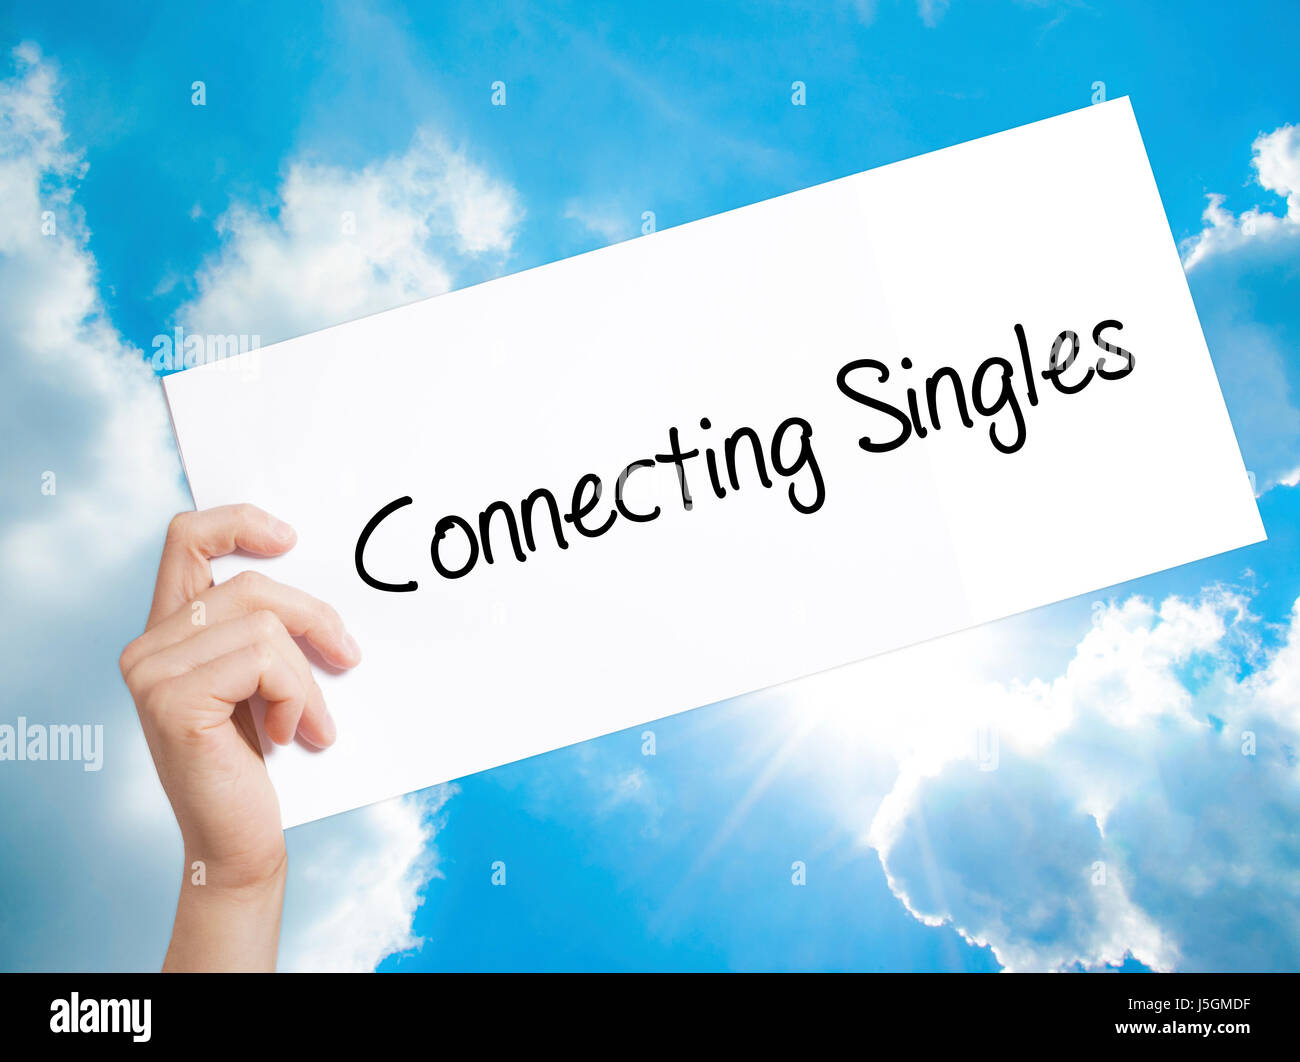 Connecting singlea